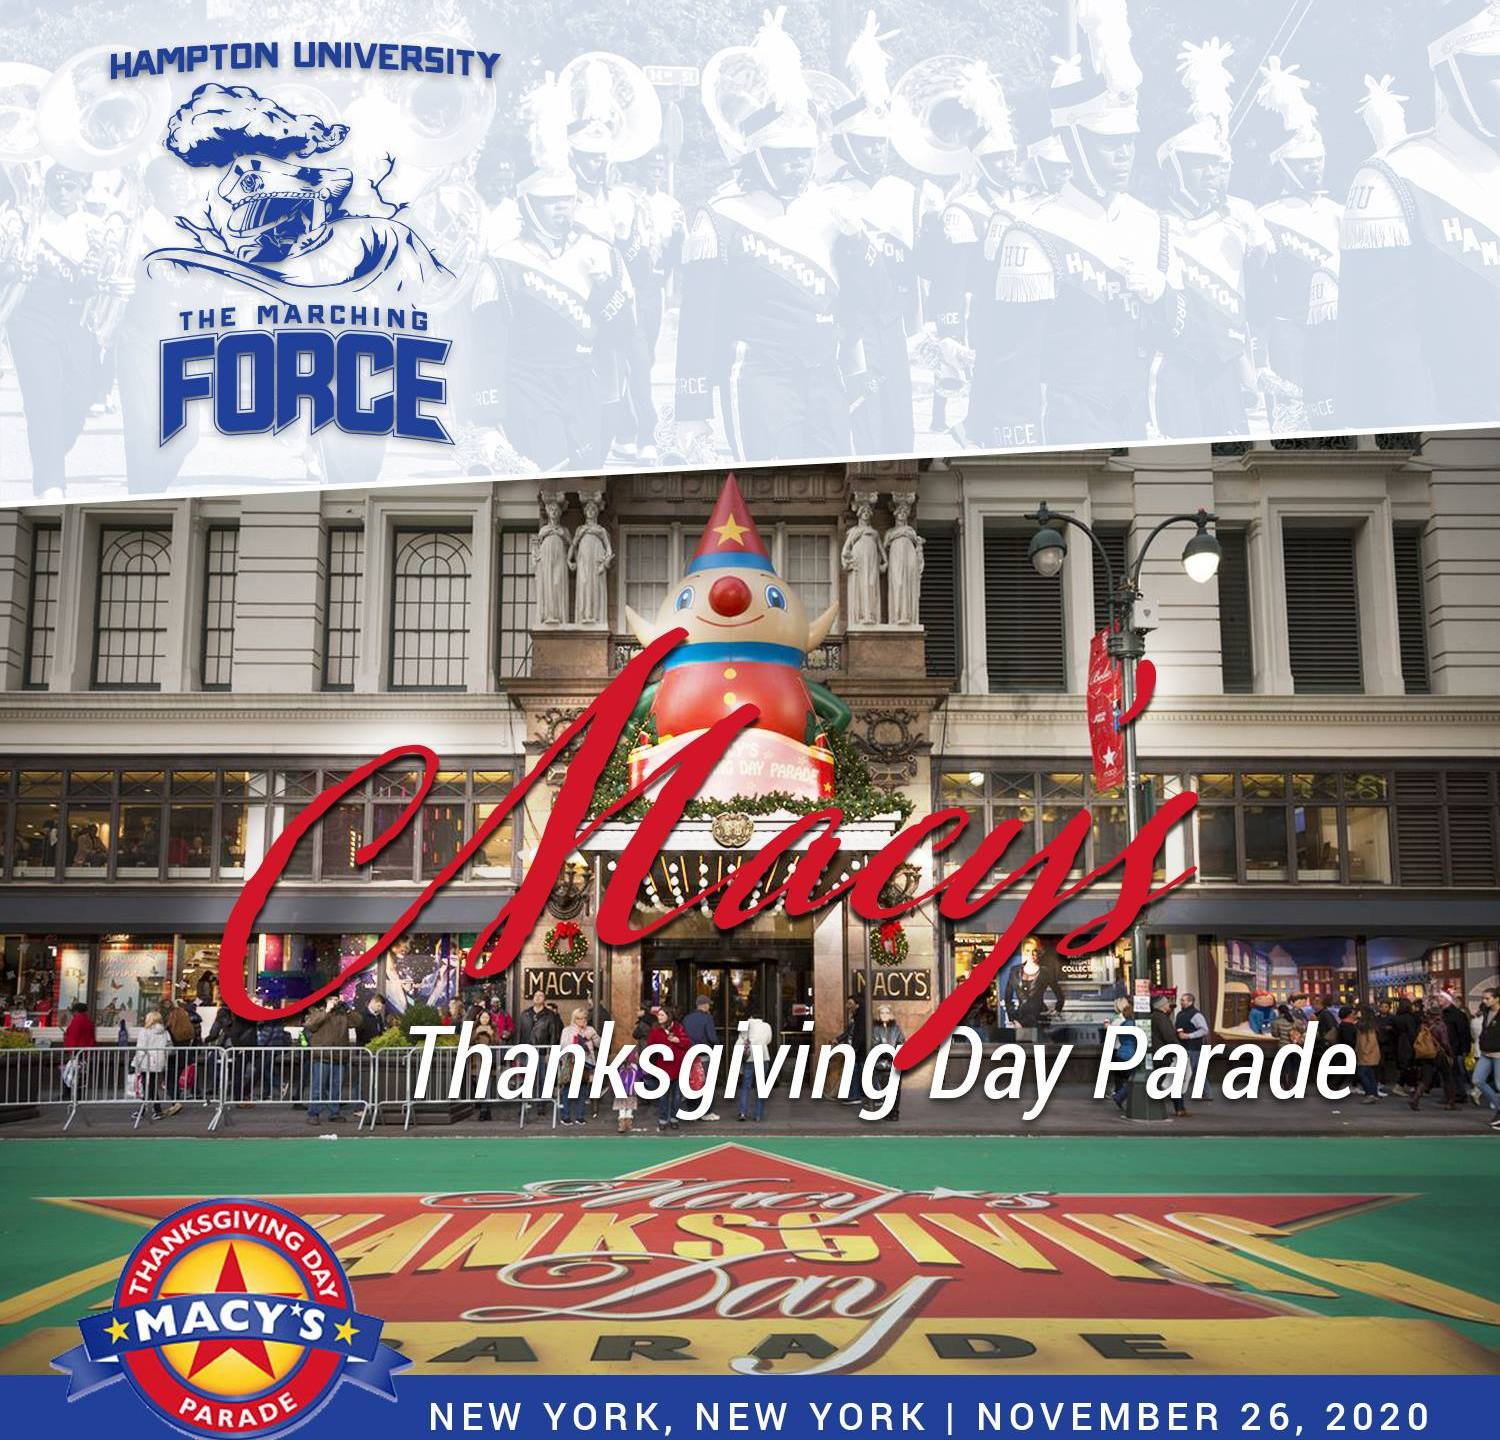 hampton university thanksgiving day parade-873703993.jpg